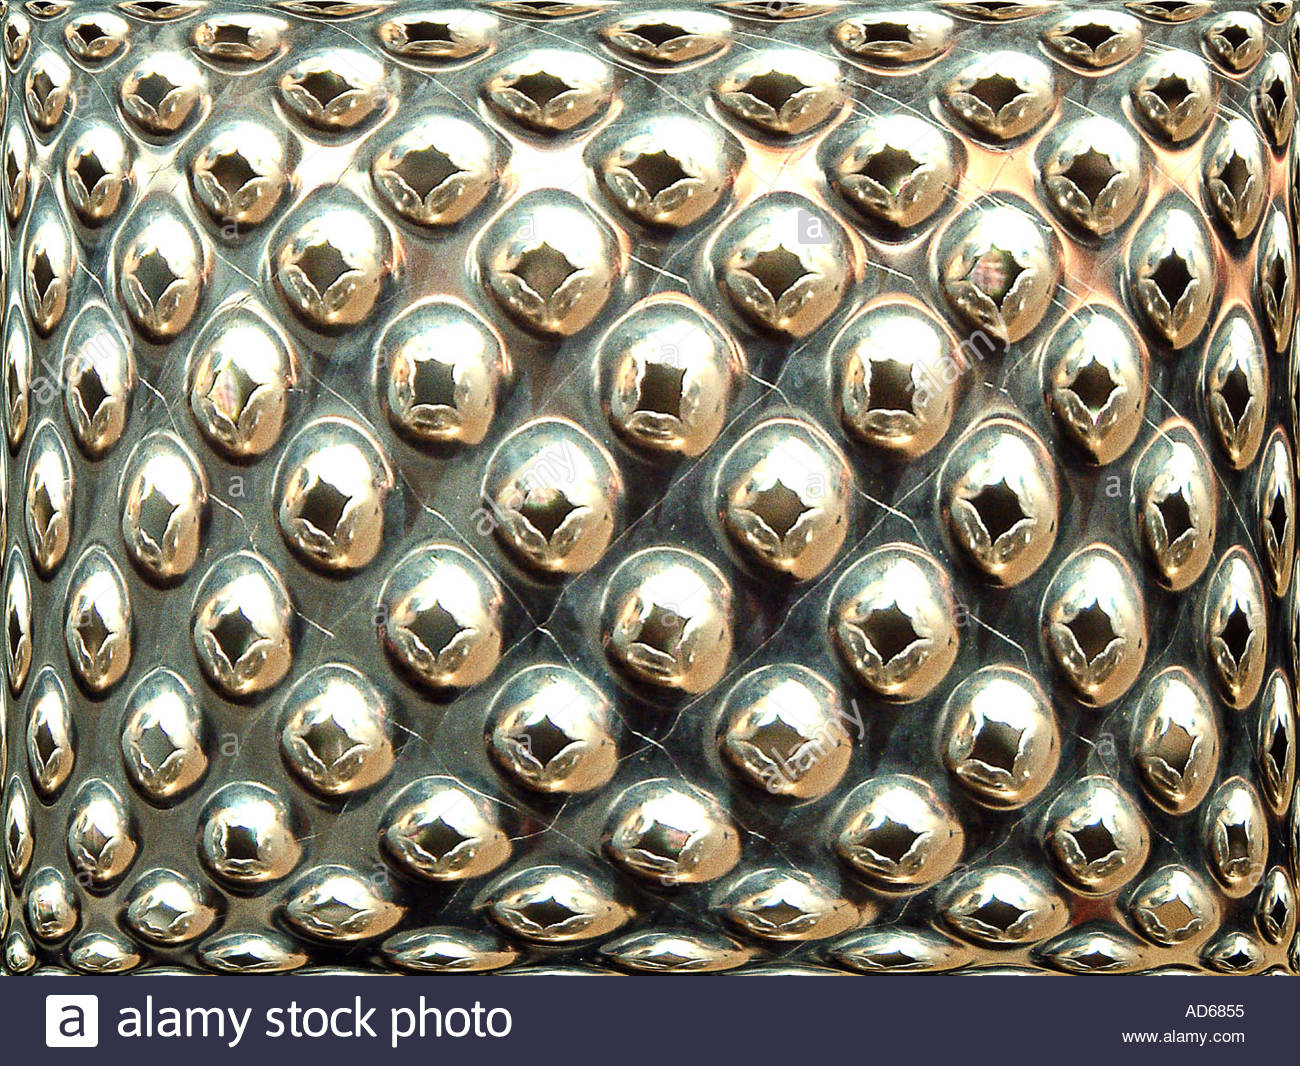 metallic grater bubbles bursting - Stock Image